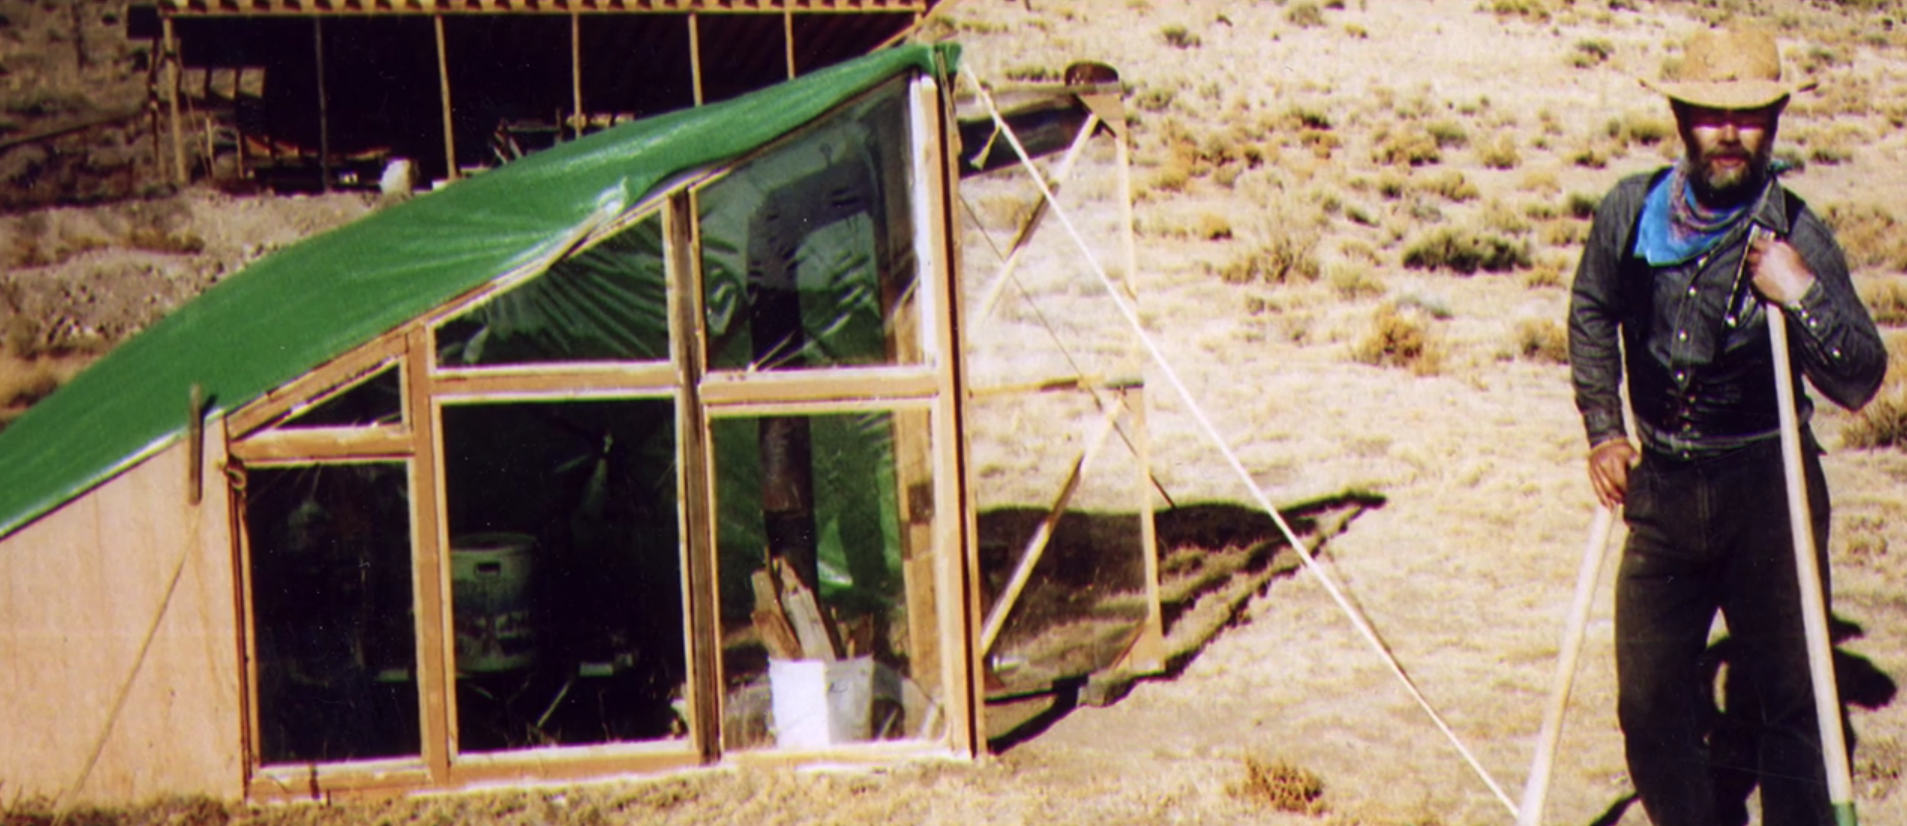 Mike Rust and the makeshift shelter he lived in while building his home by hand, ca. 1995